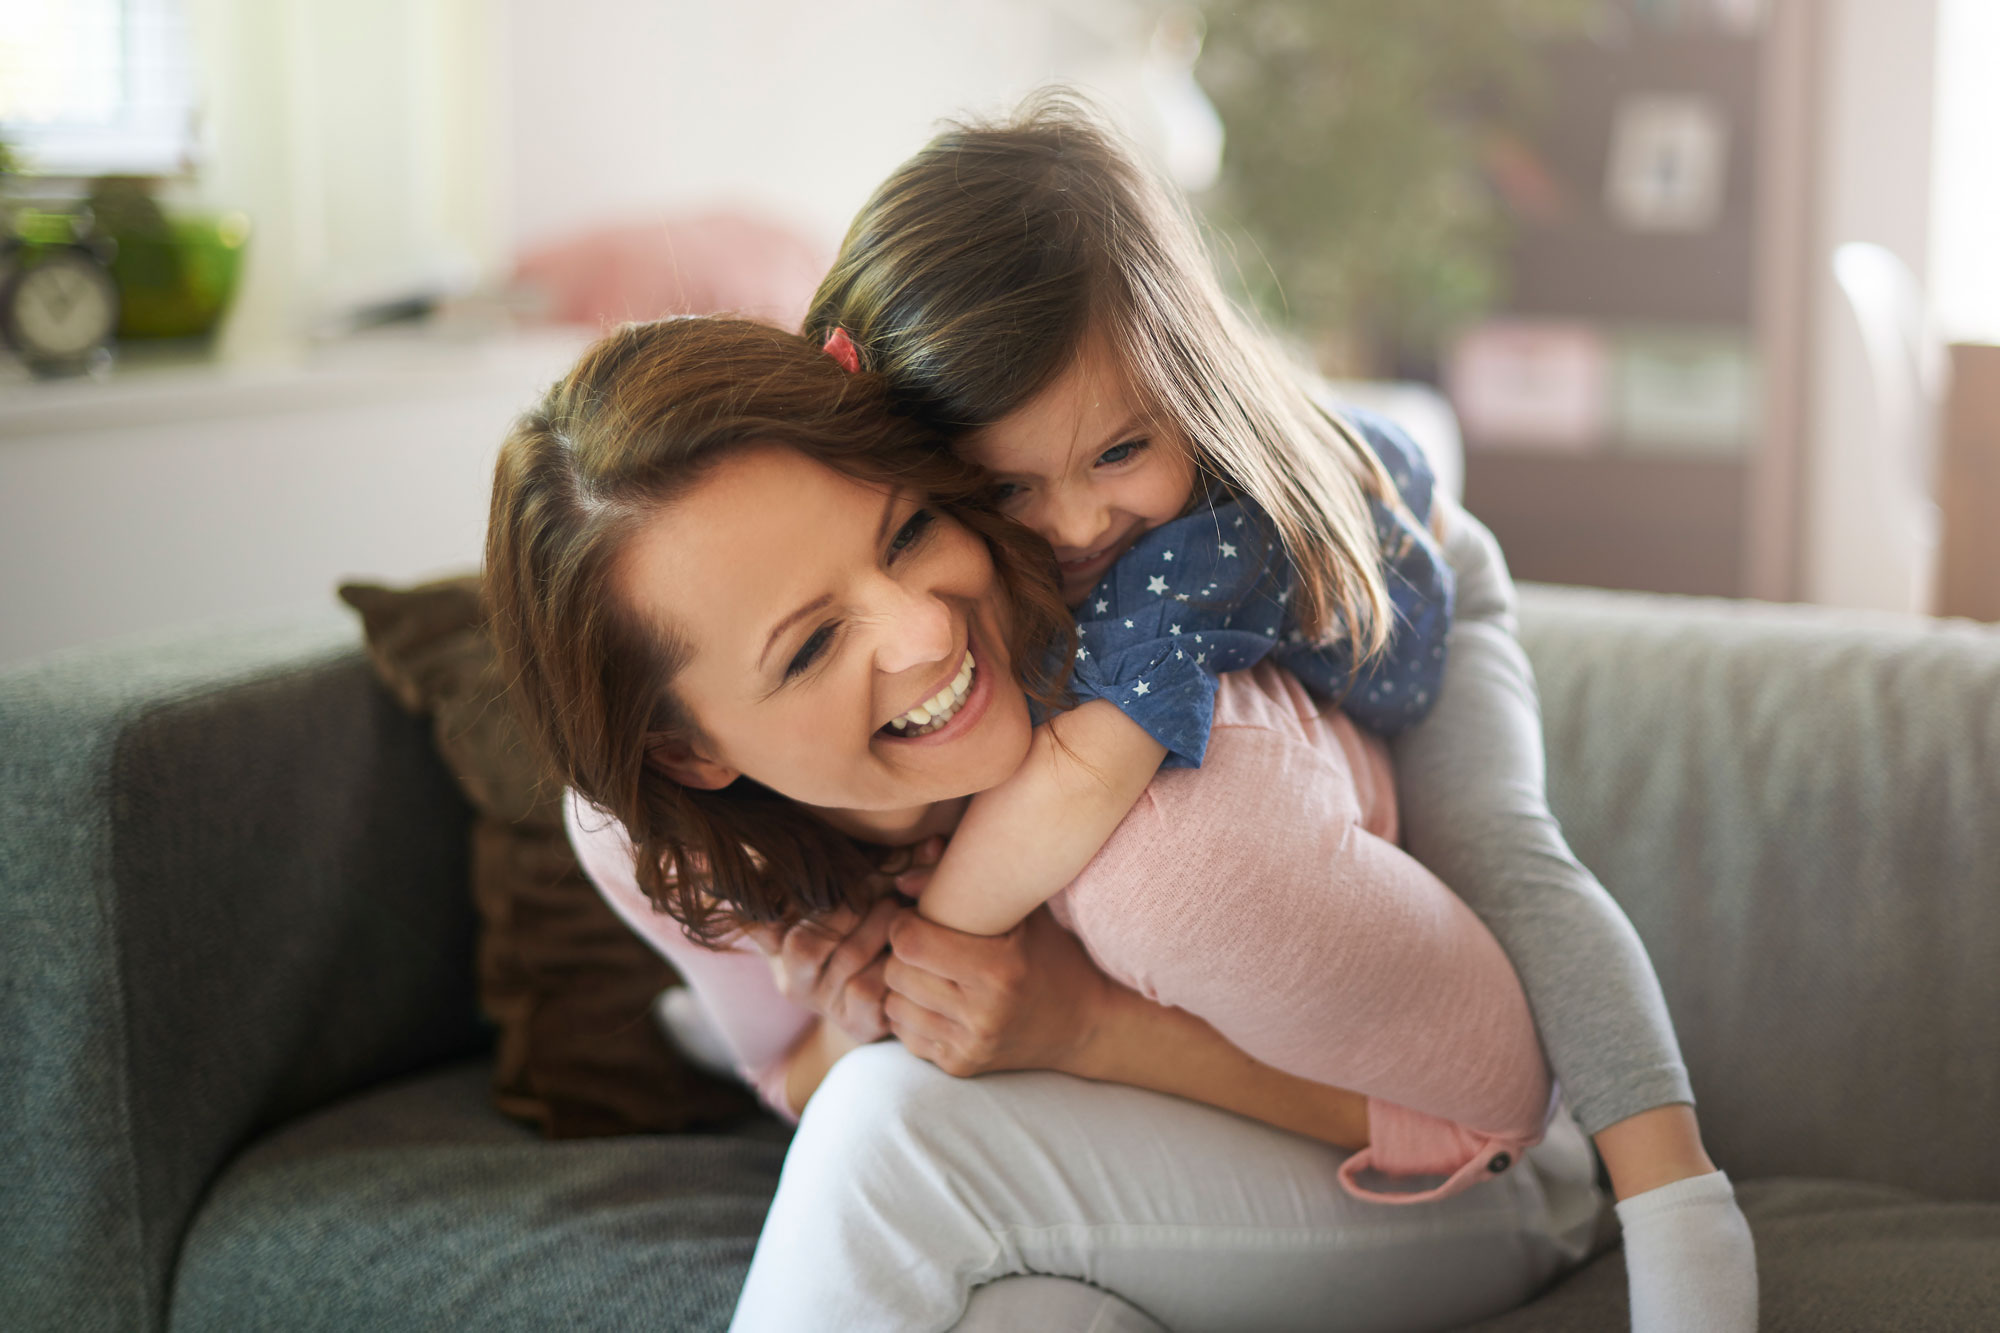 Parenting classes and therapy